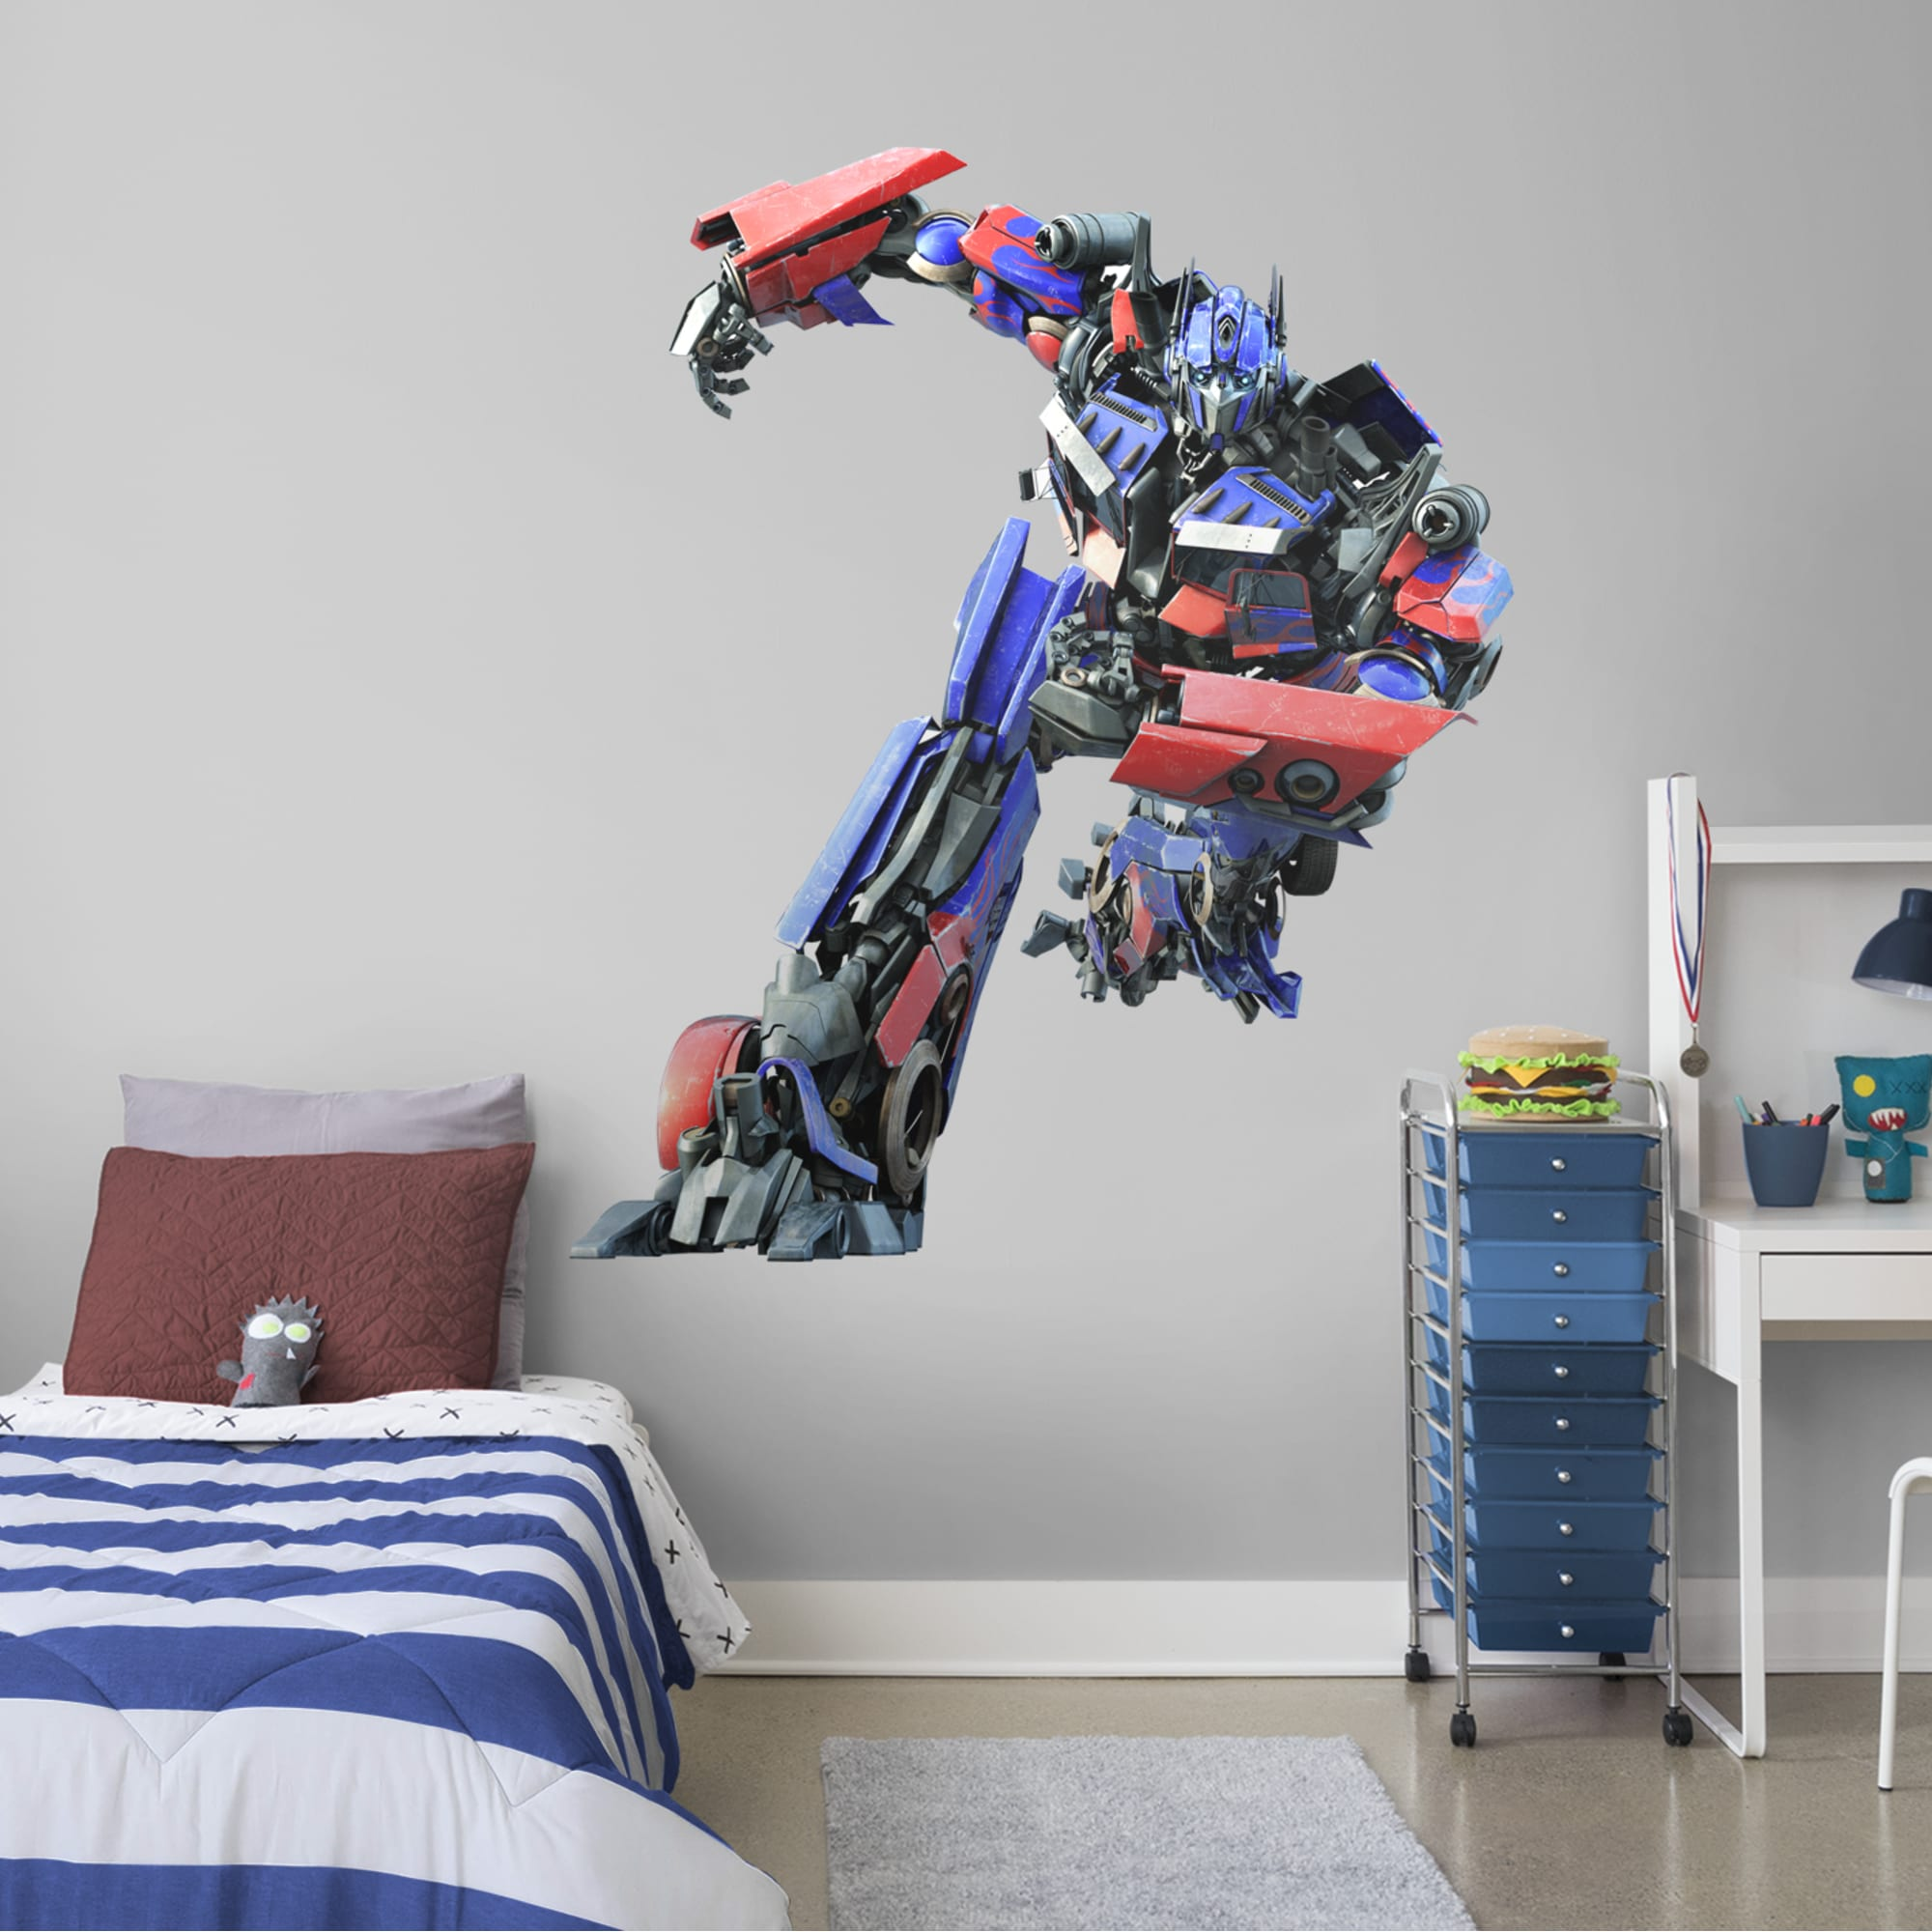 Möbel Wohnen Transformers Removable Wall Stickers Nursery Decor Boys Art Decal Optimus Prime Bioethicskenya Org